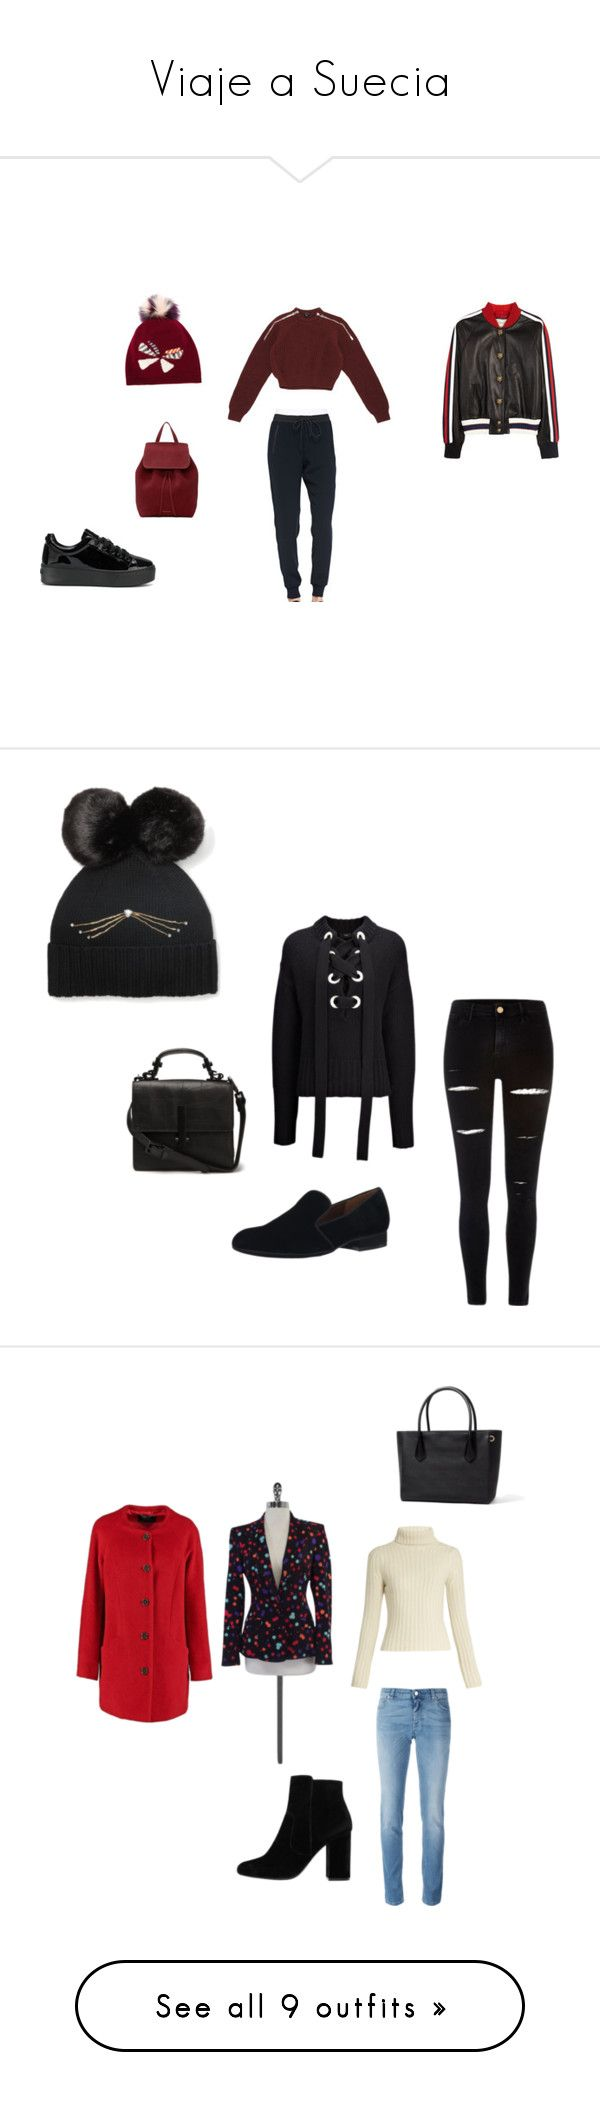 """""""Viaje a Suecia"""" by dacota ❤ liked on Polyvore featuring Vince, Gucci, Mansur Gavriel, Fendi, Kenzo, Joseph, River Island, Nine West, Kate Spade and Givenchy"""